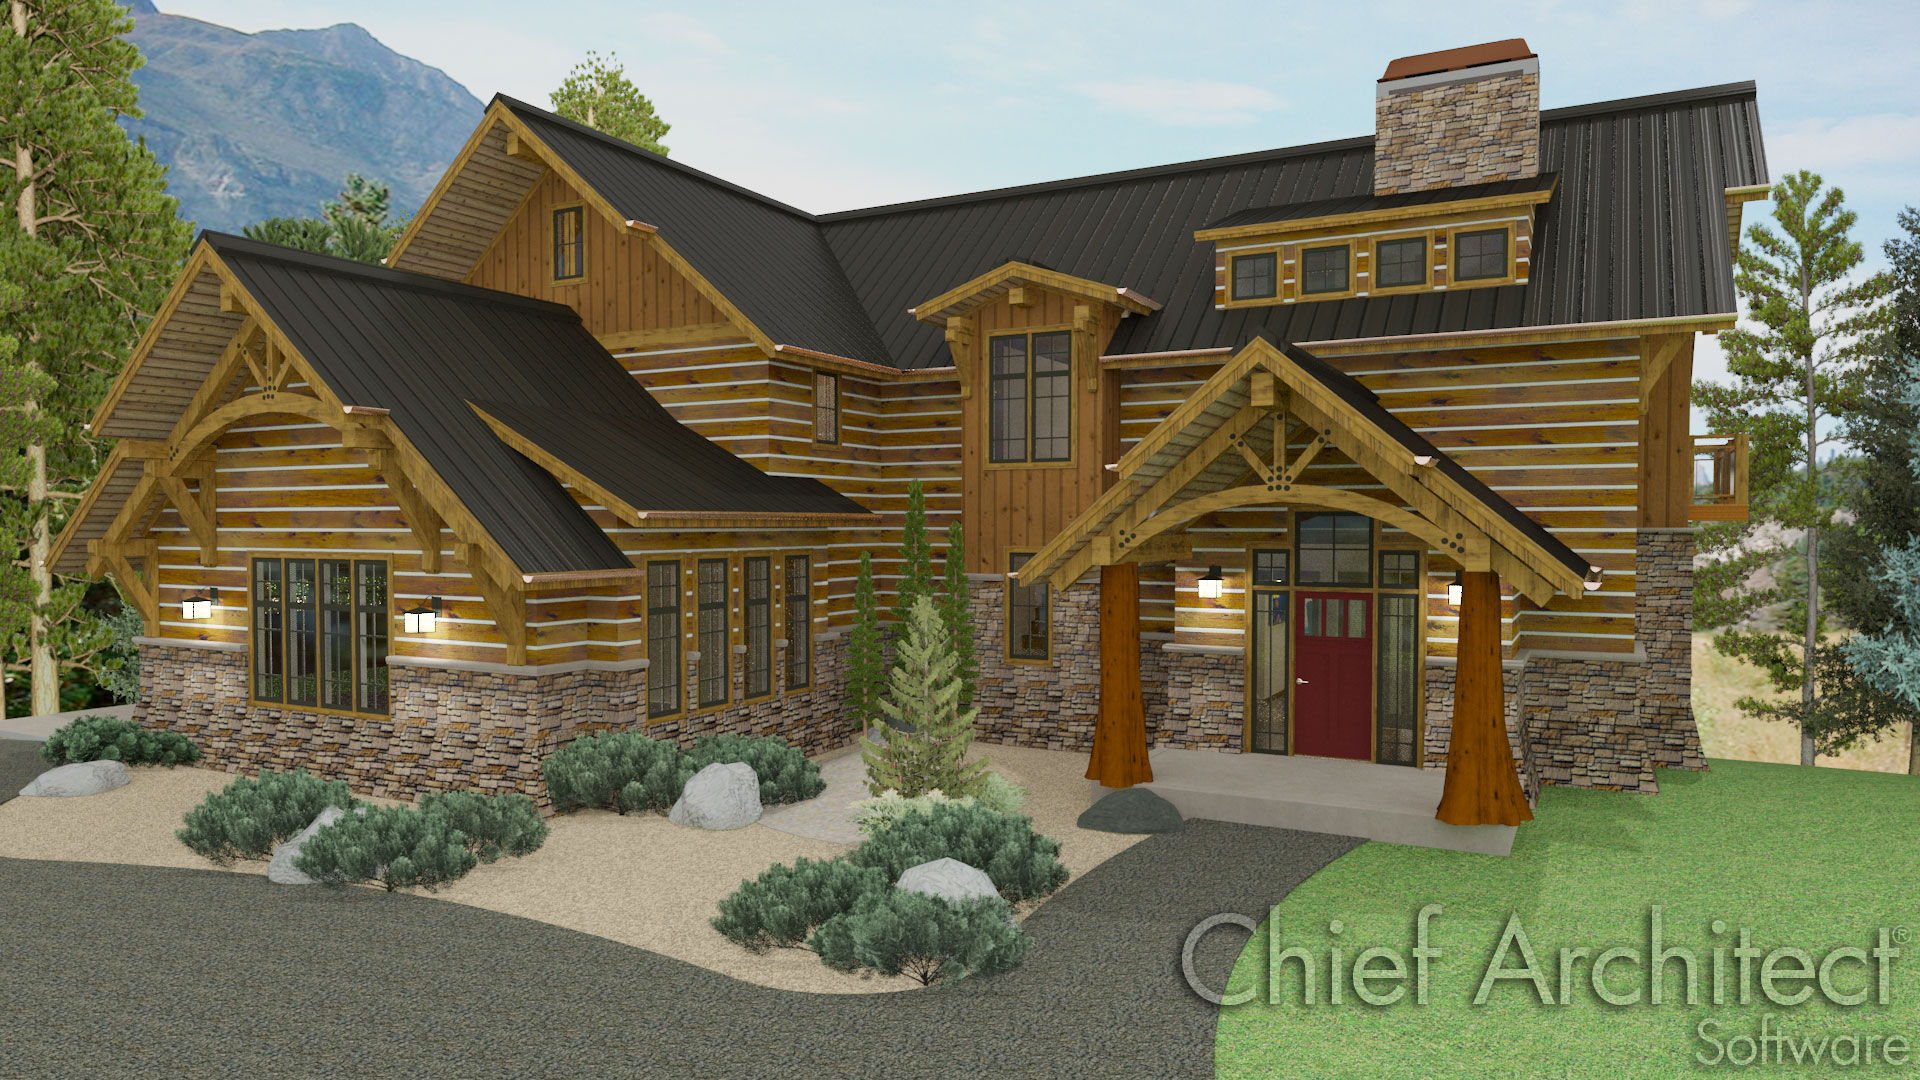 Chief architect home design software samples gallery for Wooden home plans